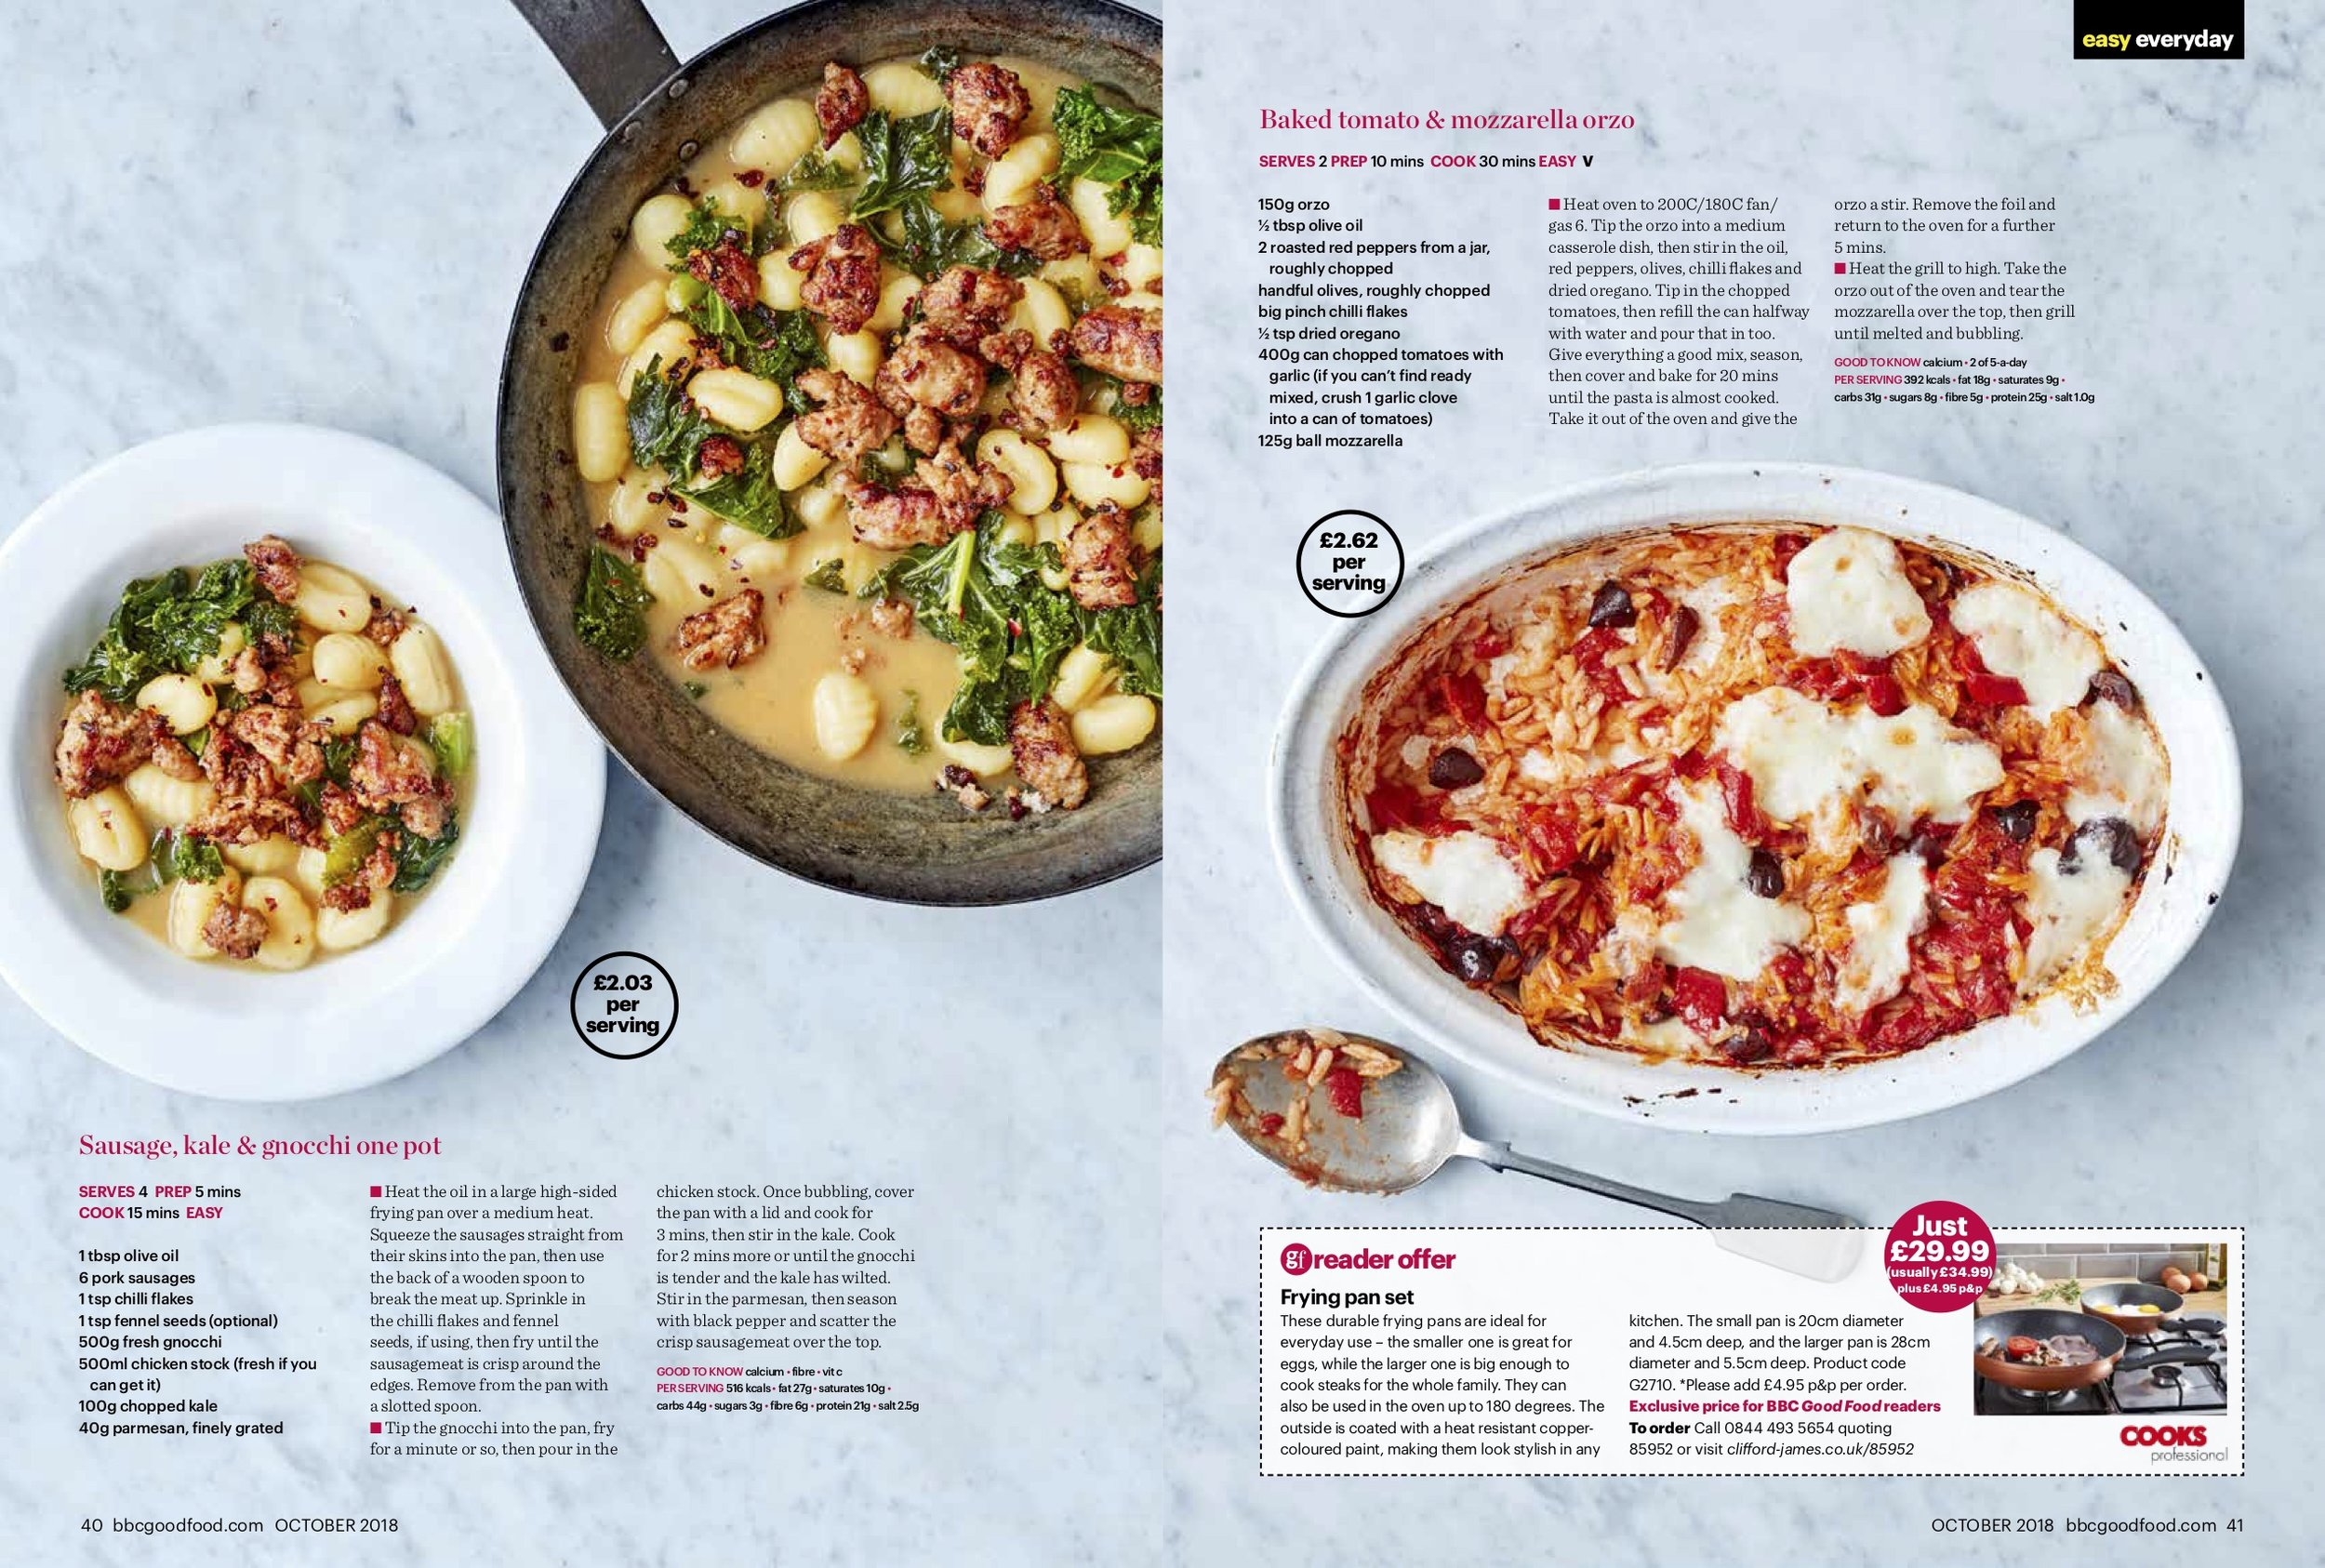 Publication: BBC GoodFood Magazine, October 2018  Photographer: Stu Ovenden  Shoot director: Andrew Jackson  Props stylist: Victoria Eldridge  Recipe: Sophie Godwin